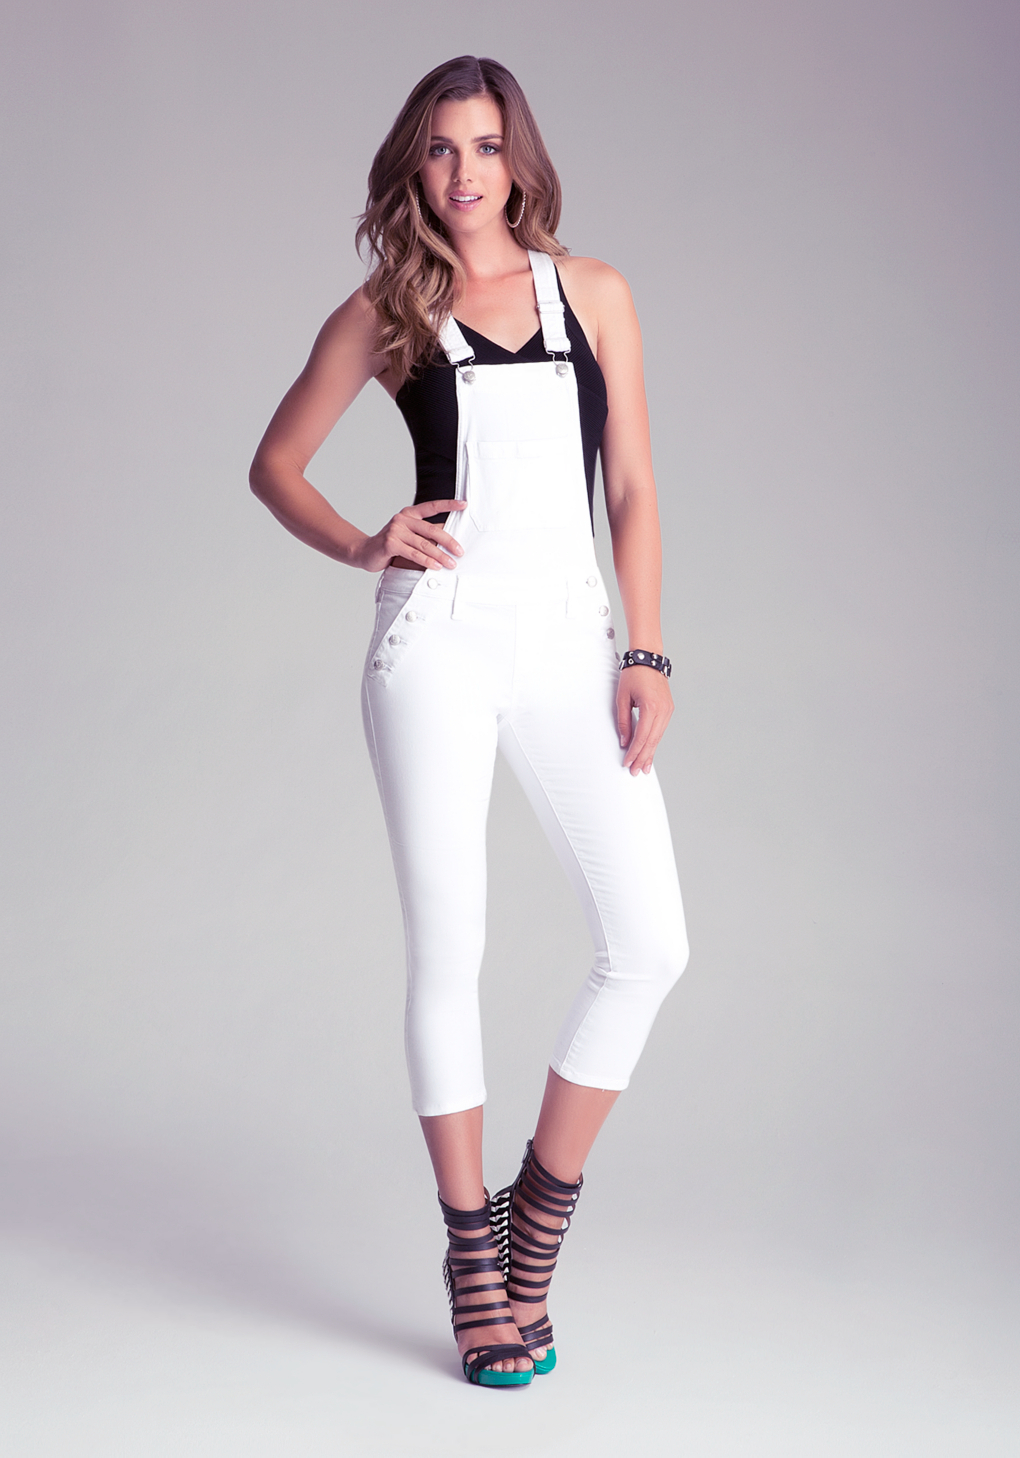 Find great deals on eBay for white overalls. Shop with confidence.